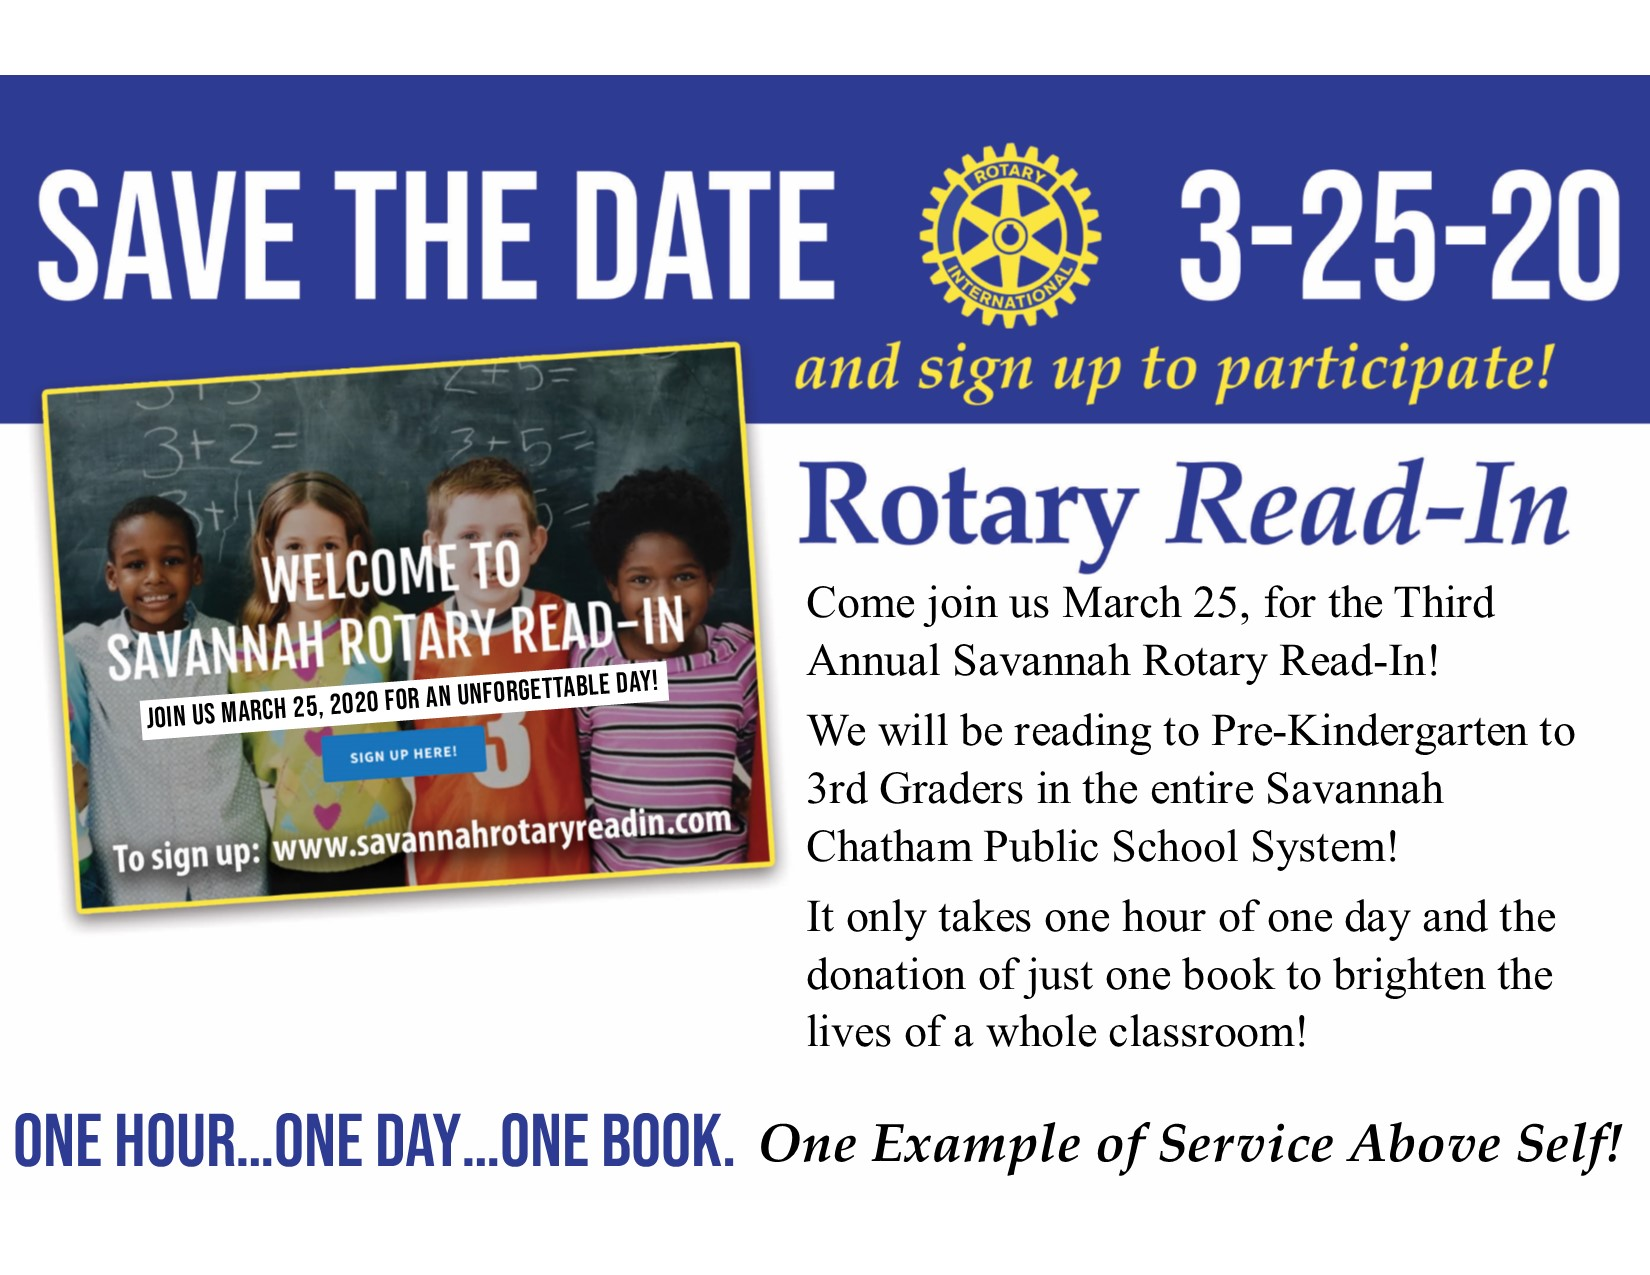 Savannah Rotary Read-In 2020